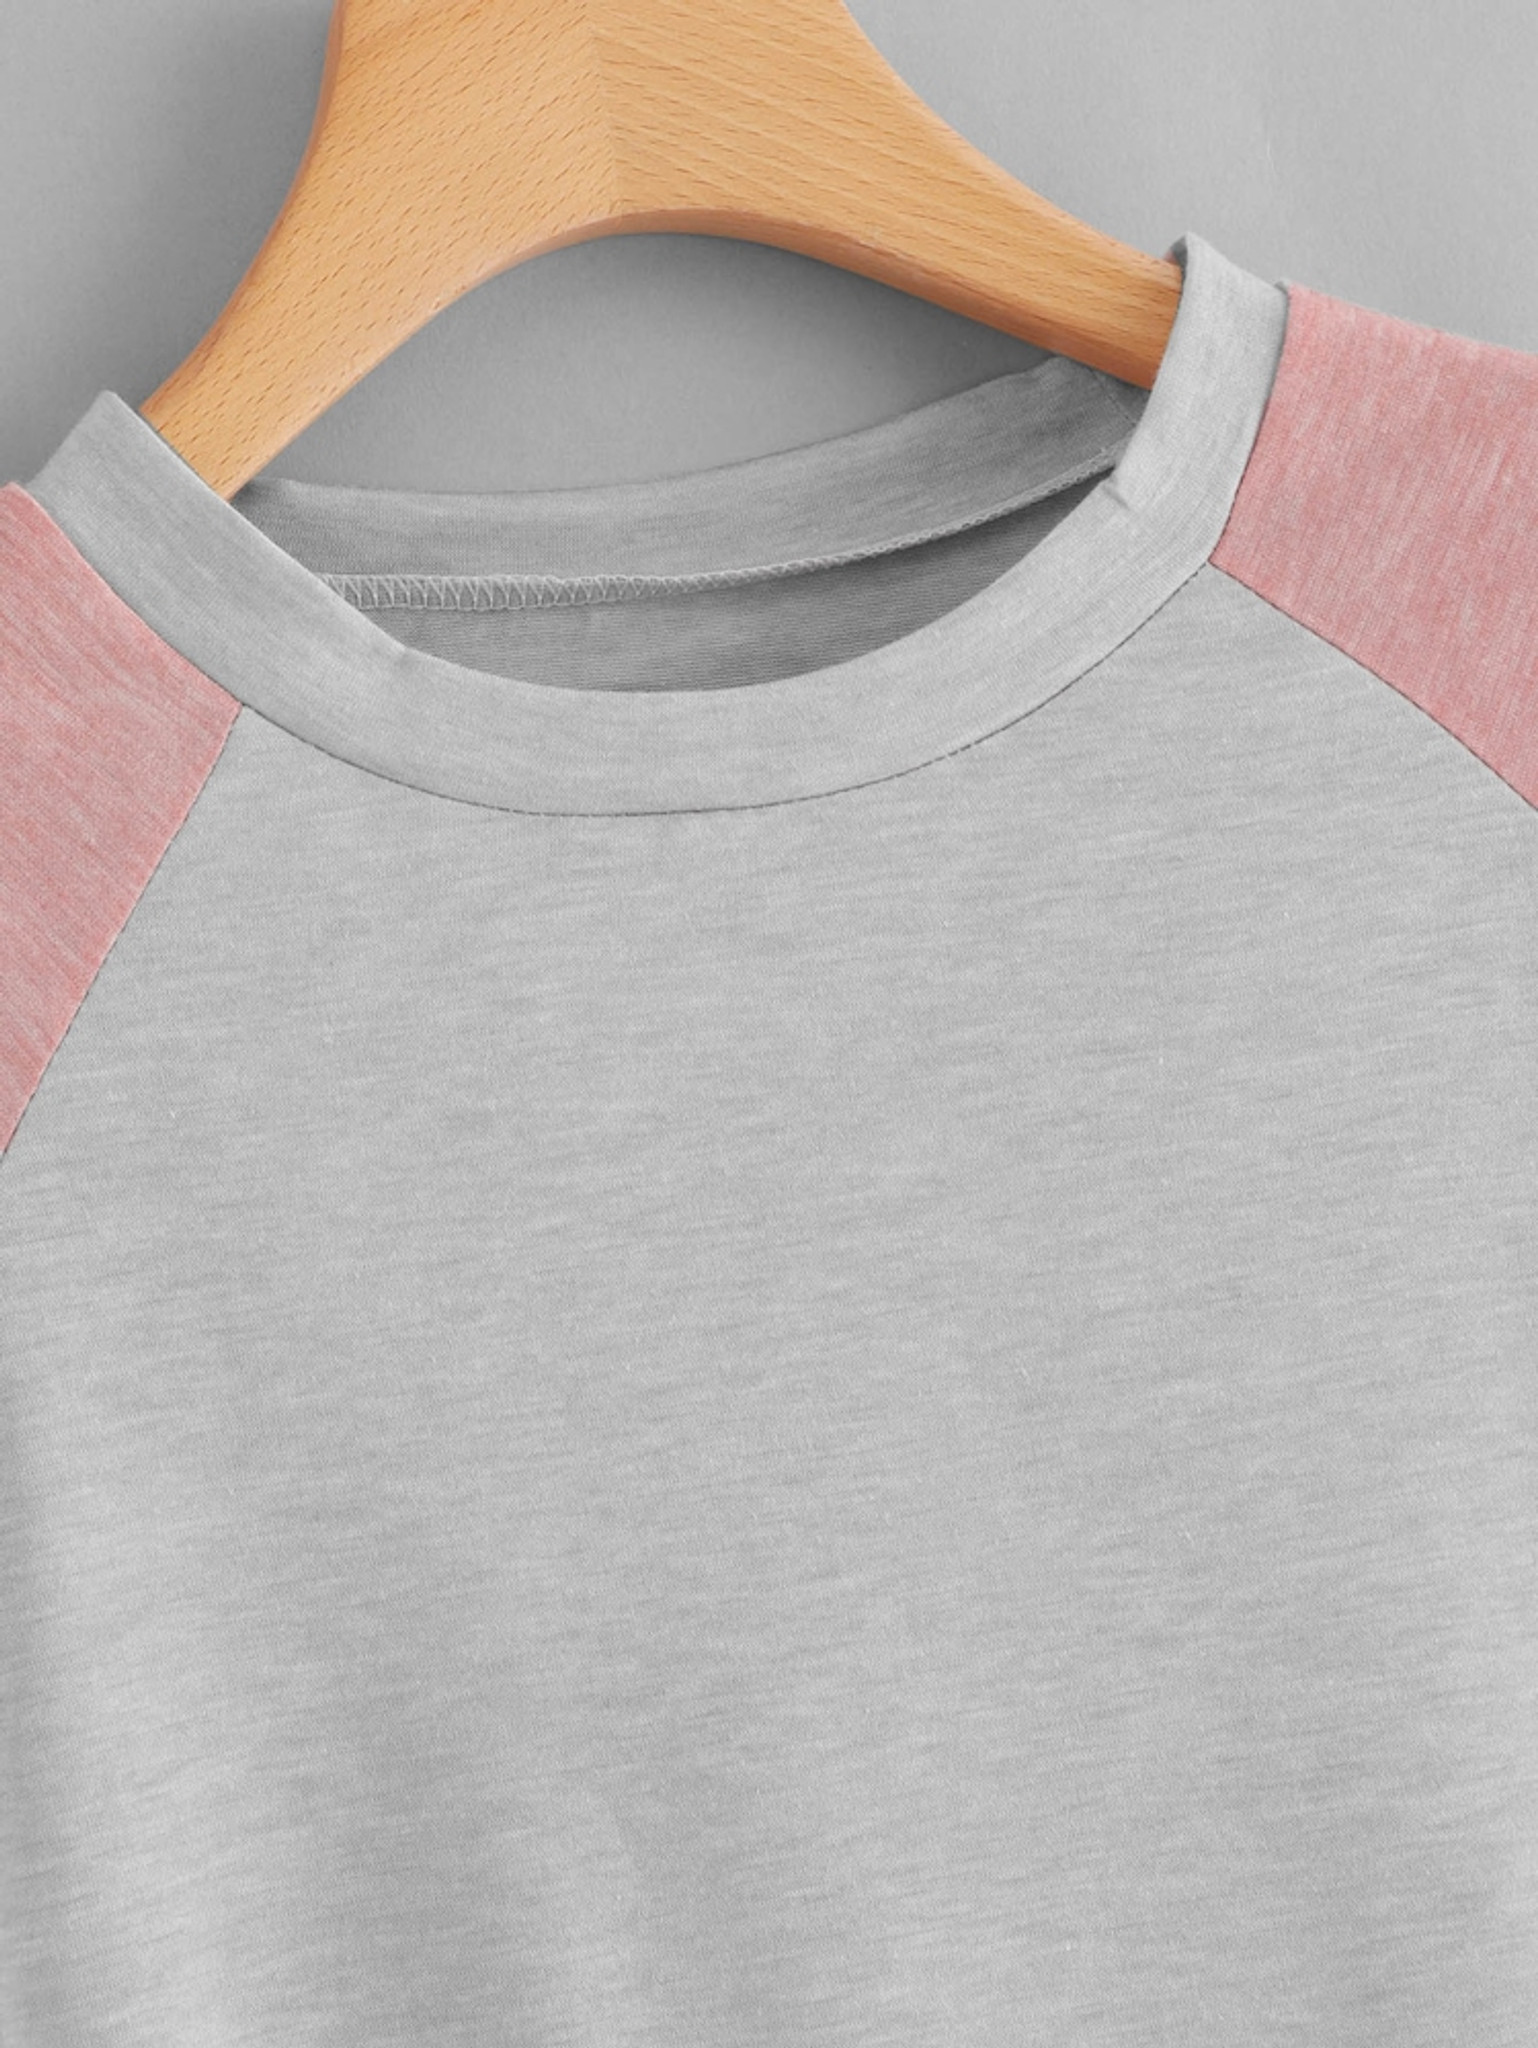 Fifth Avenue Women's Color Block STS80 T-Shirt - Pink White and Grey